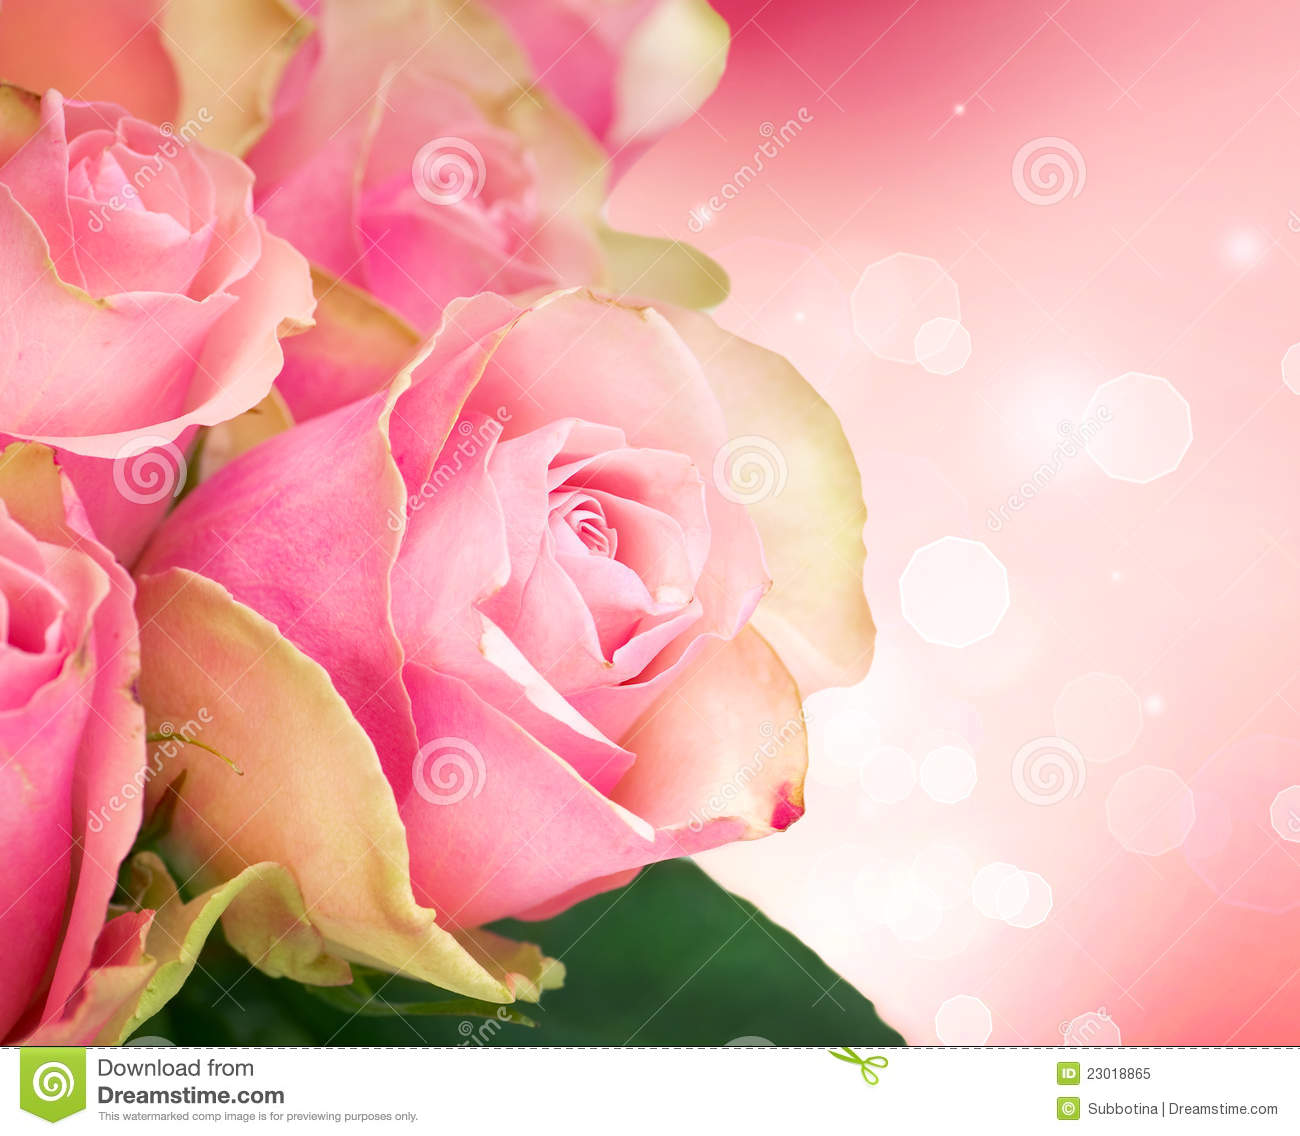 Rose Flower Art Design Royalty Free Stock Photo Image